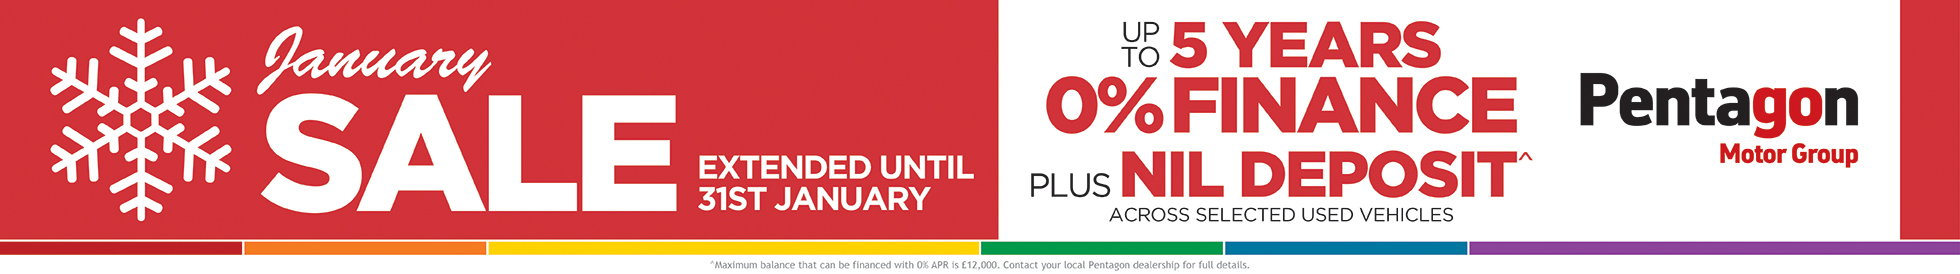 January Used Car Sale! Drive Away This Ford Fiesta With 0% APR Finance For Up To 5 Years